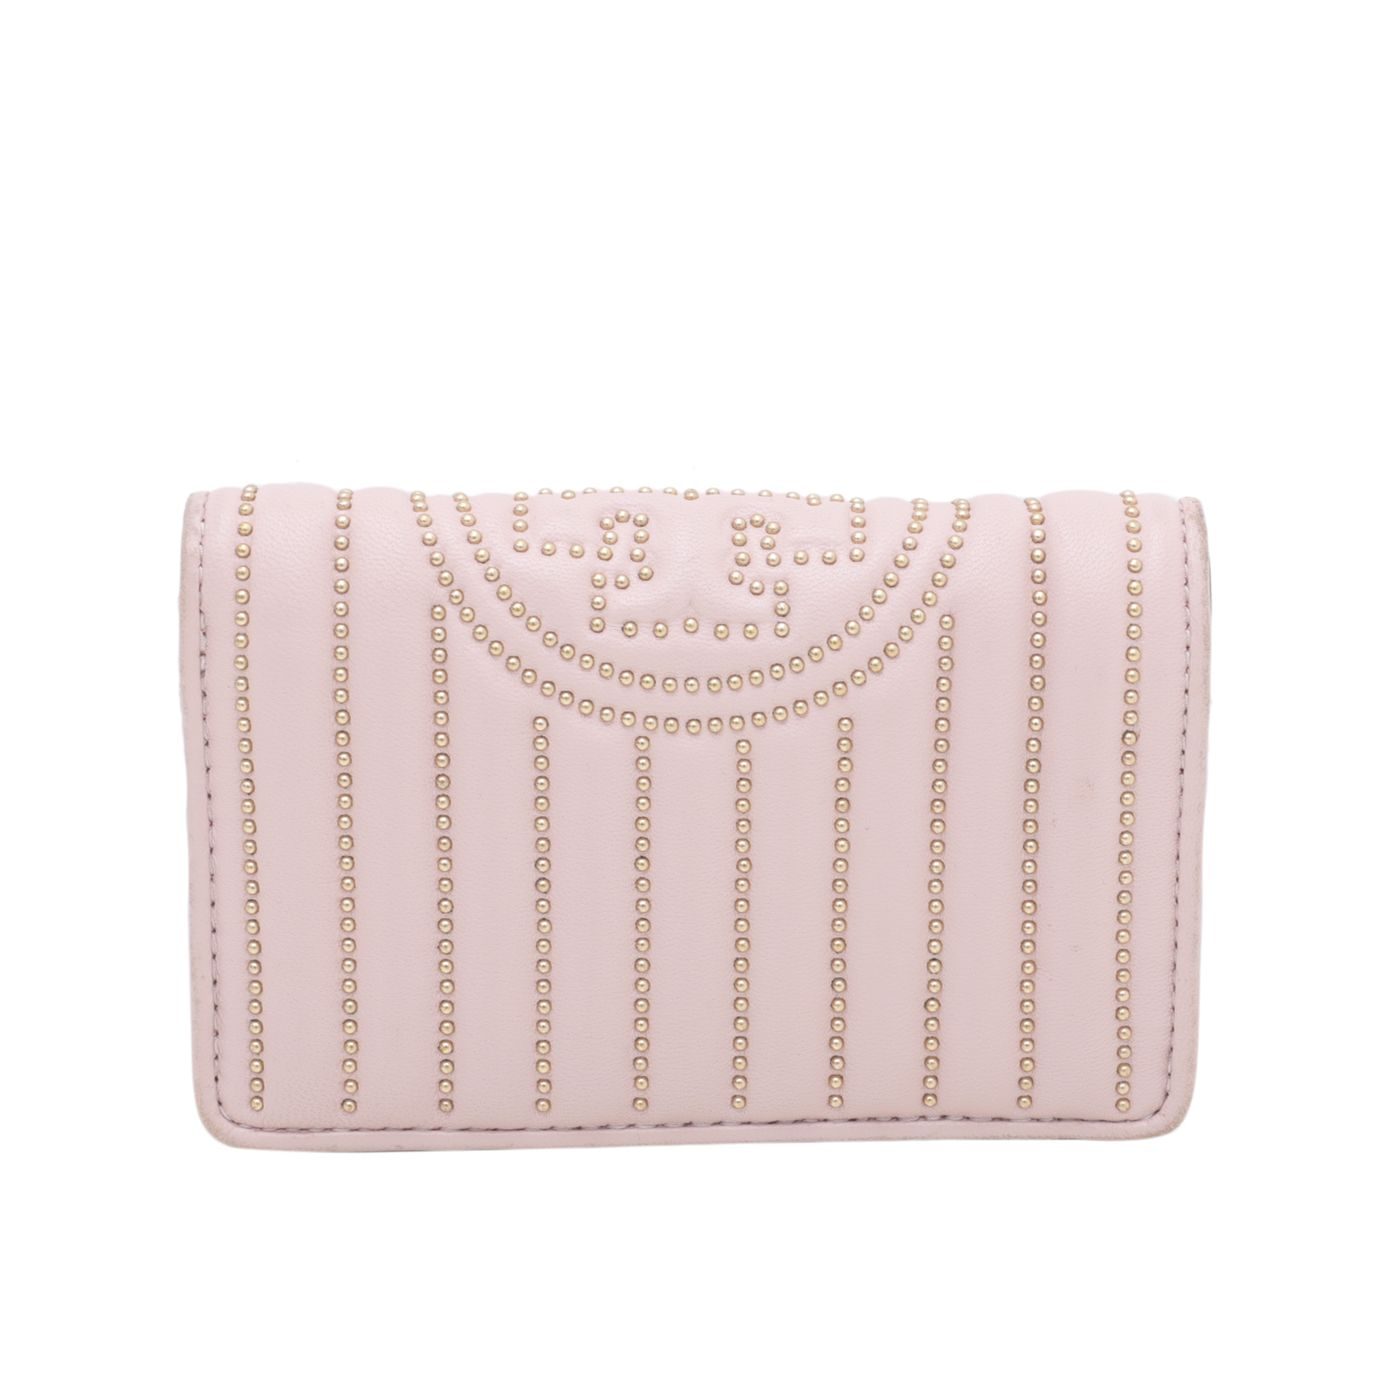 Tory Burch Soft Pink Fleming Mini Studs Wallet